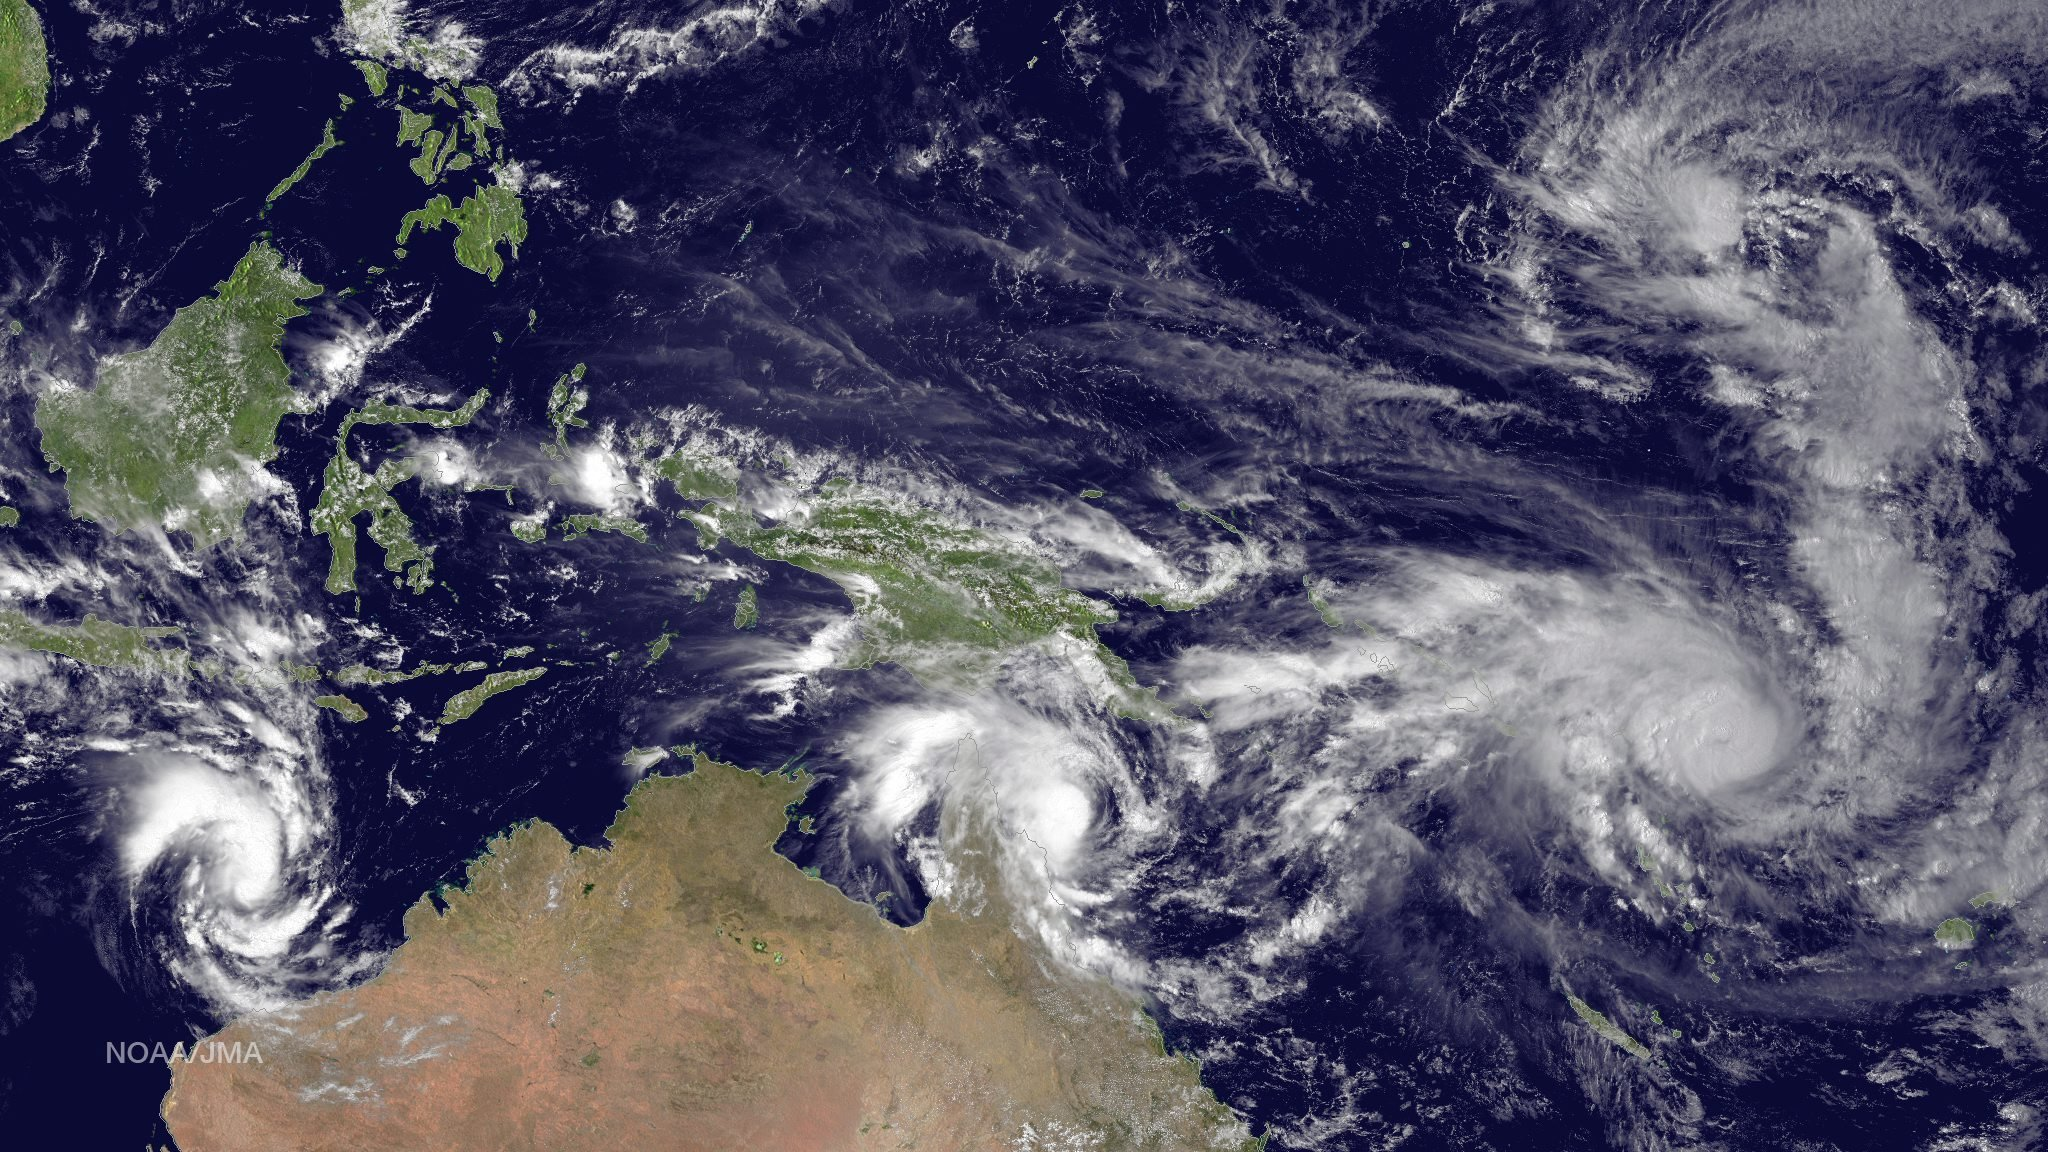 Left to right: Tropical Cyclone Olwyn in the Indian Ocean heading south for landfall near Learmonth on the west coast of Australia, Tropical Cyclone Nathan meanders northeast of Cooktown, Queensland, Australia in the Coral Sea, Tropical Cyclone Pam tracks due south heading for the islands of Vanuatu in the southern Pacific Ocean and Tropical Depression 3 heads west-northwest towards Guam in the northern Pacific Ocean on March 11, 2015.